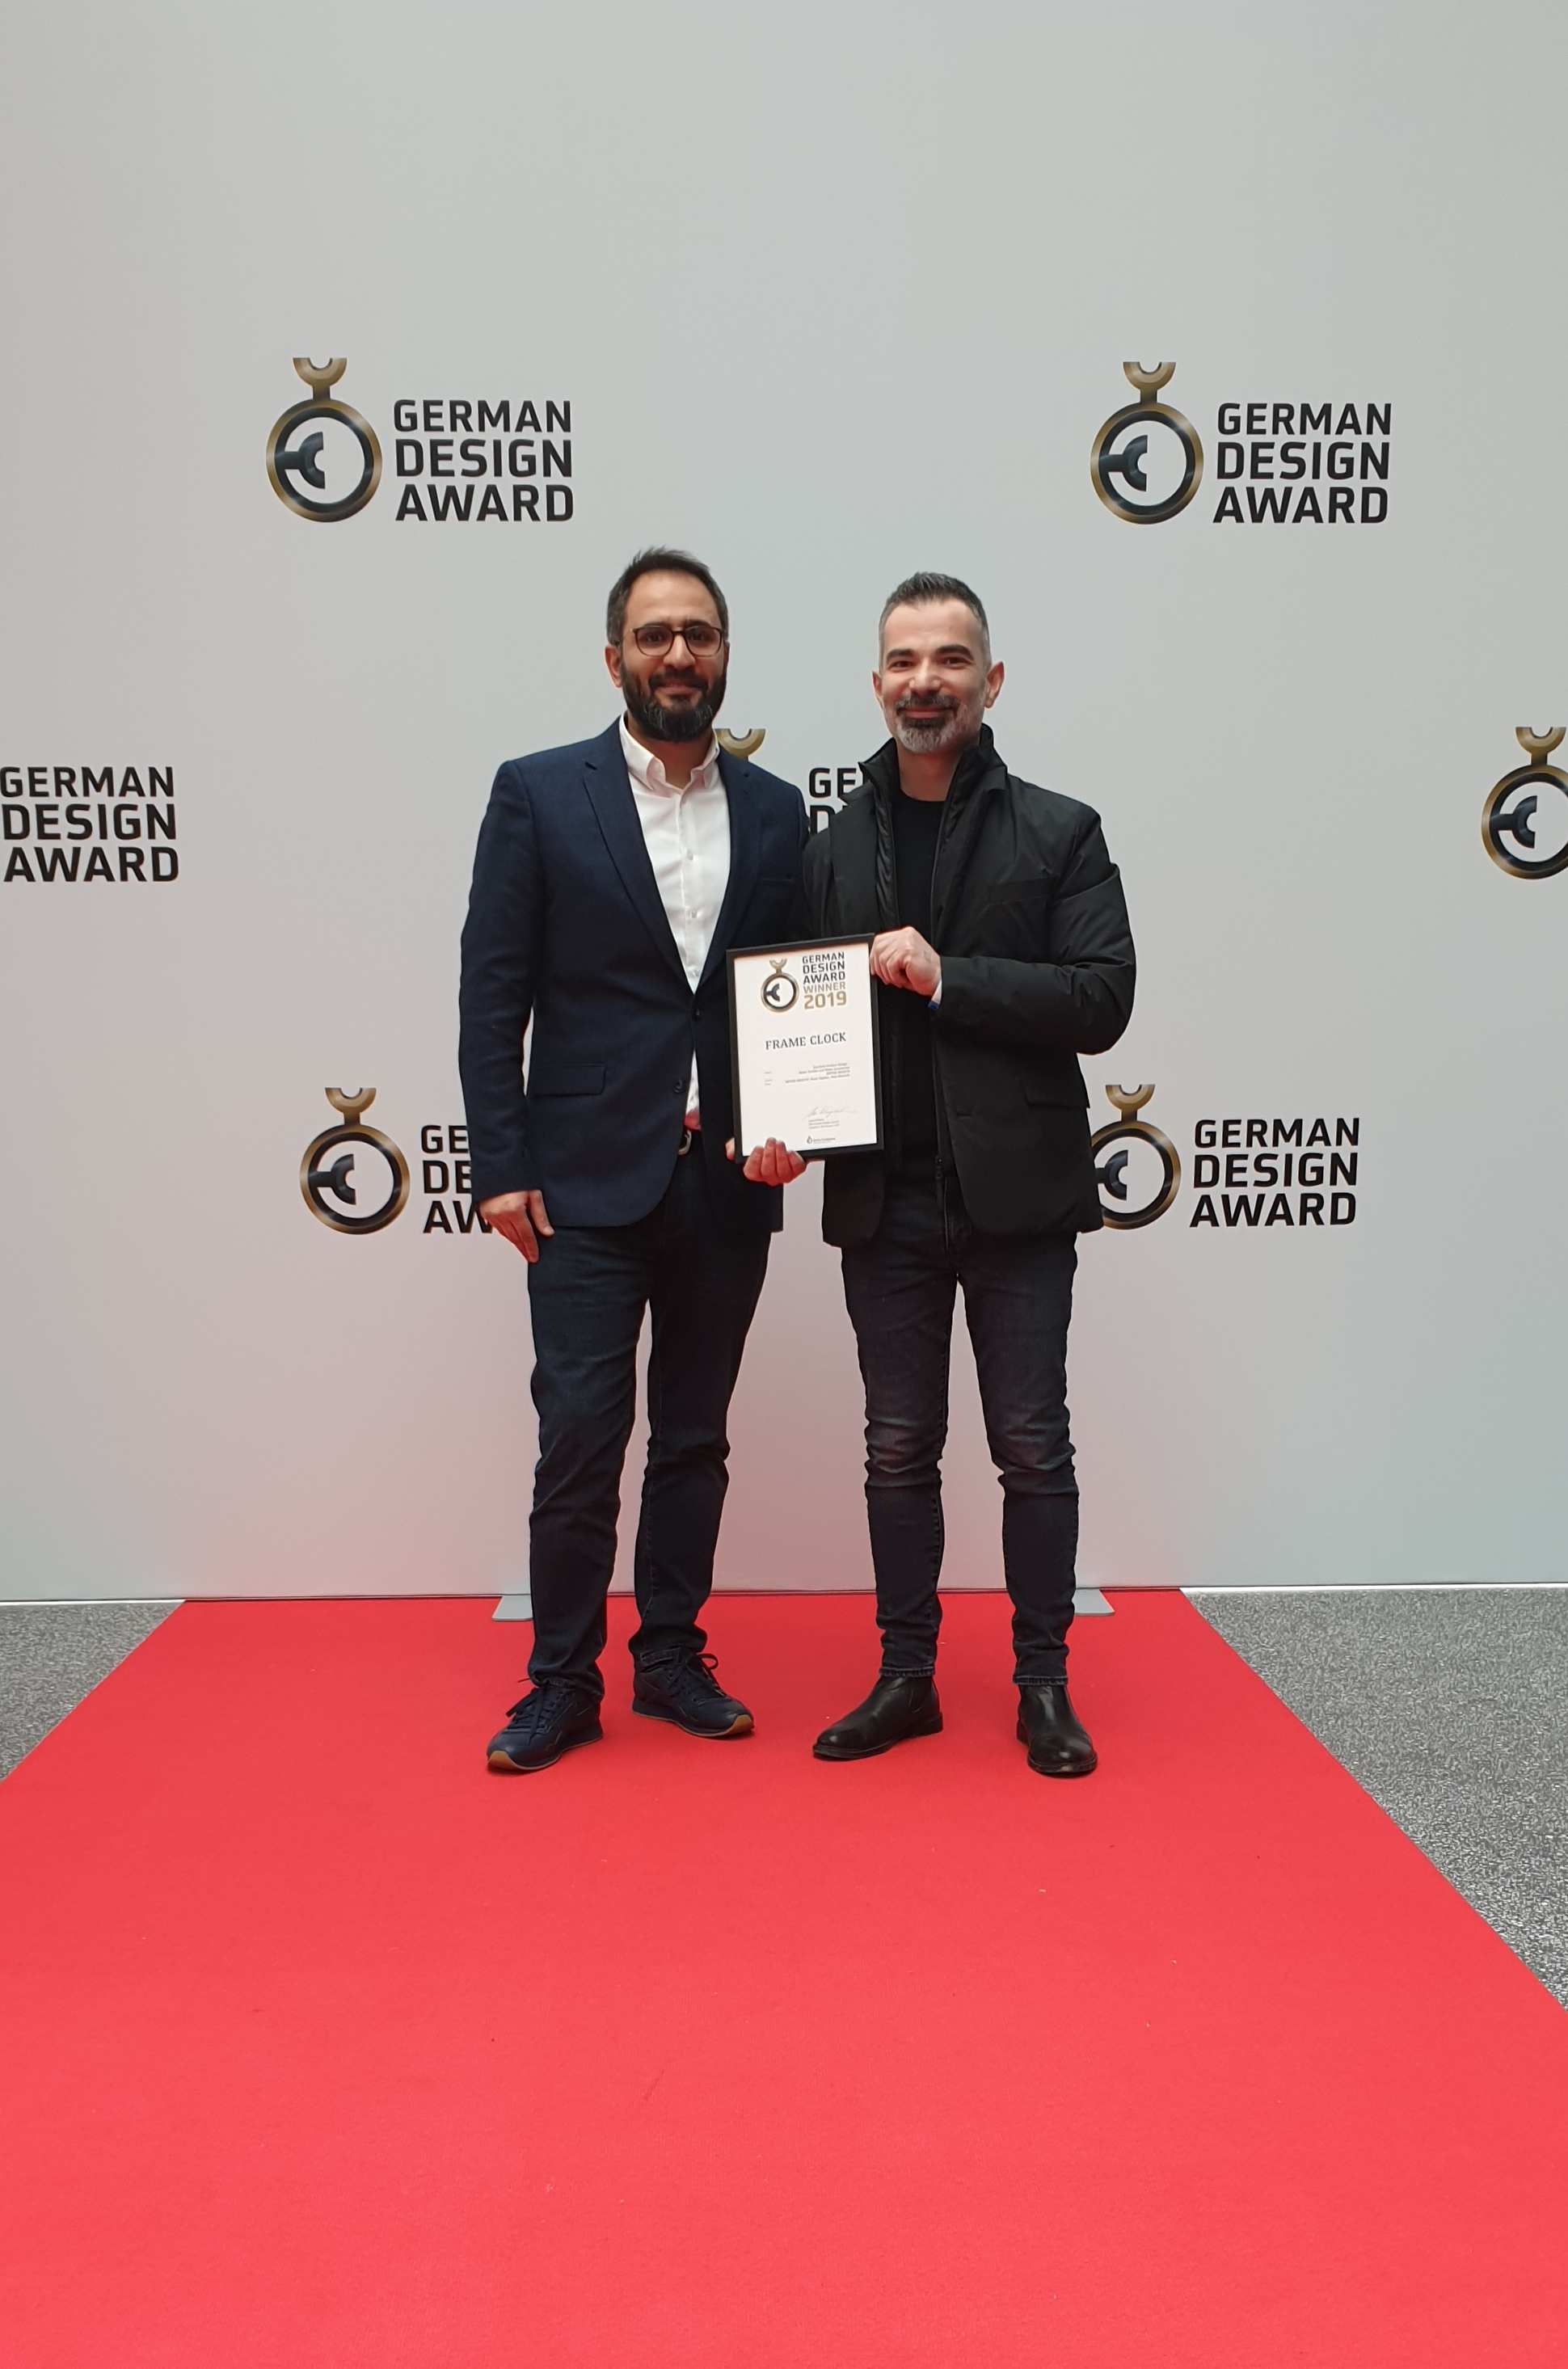 german-design-award-kazananlari